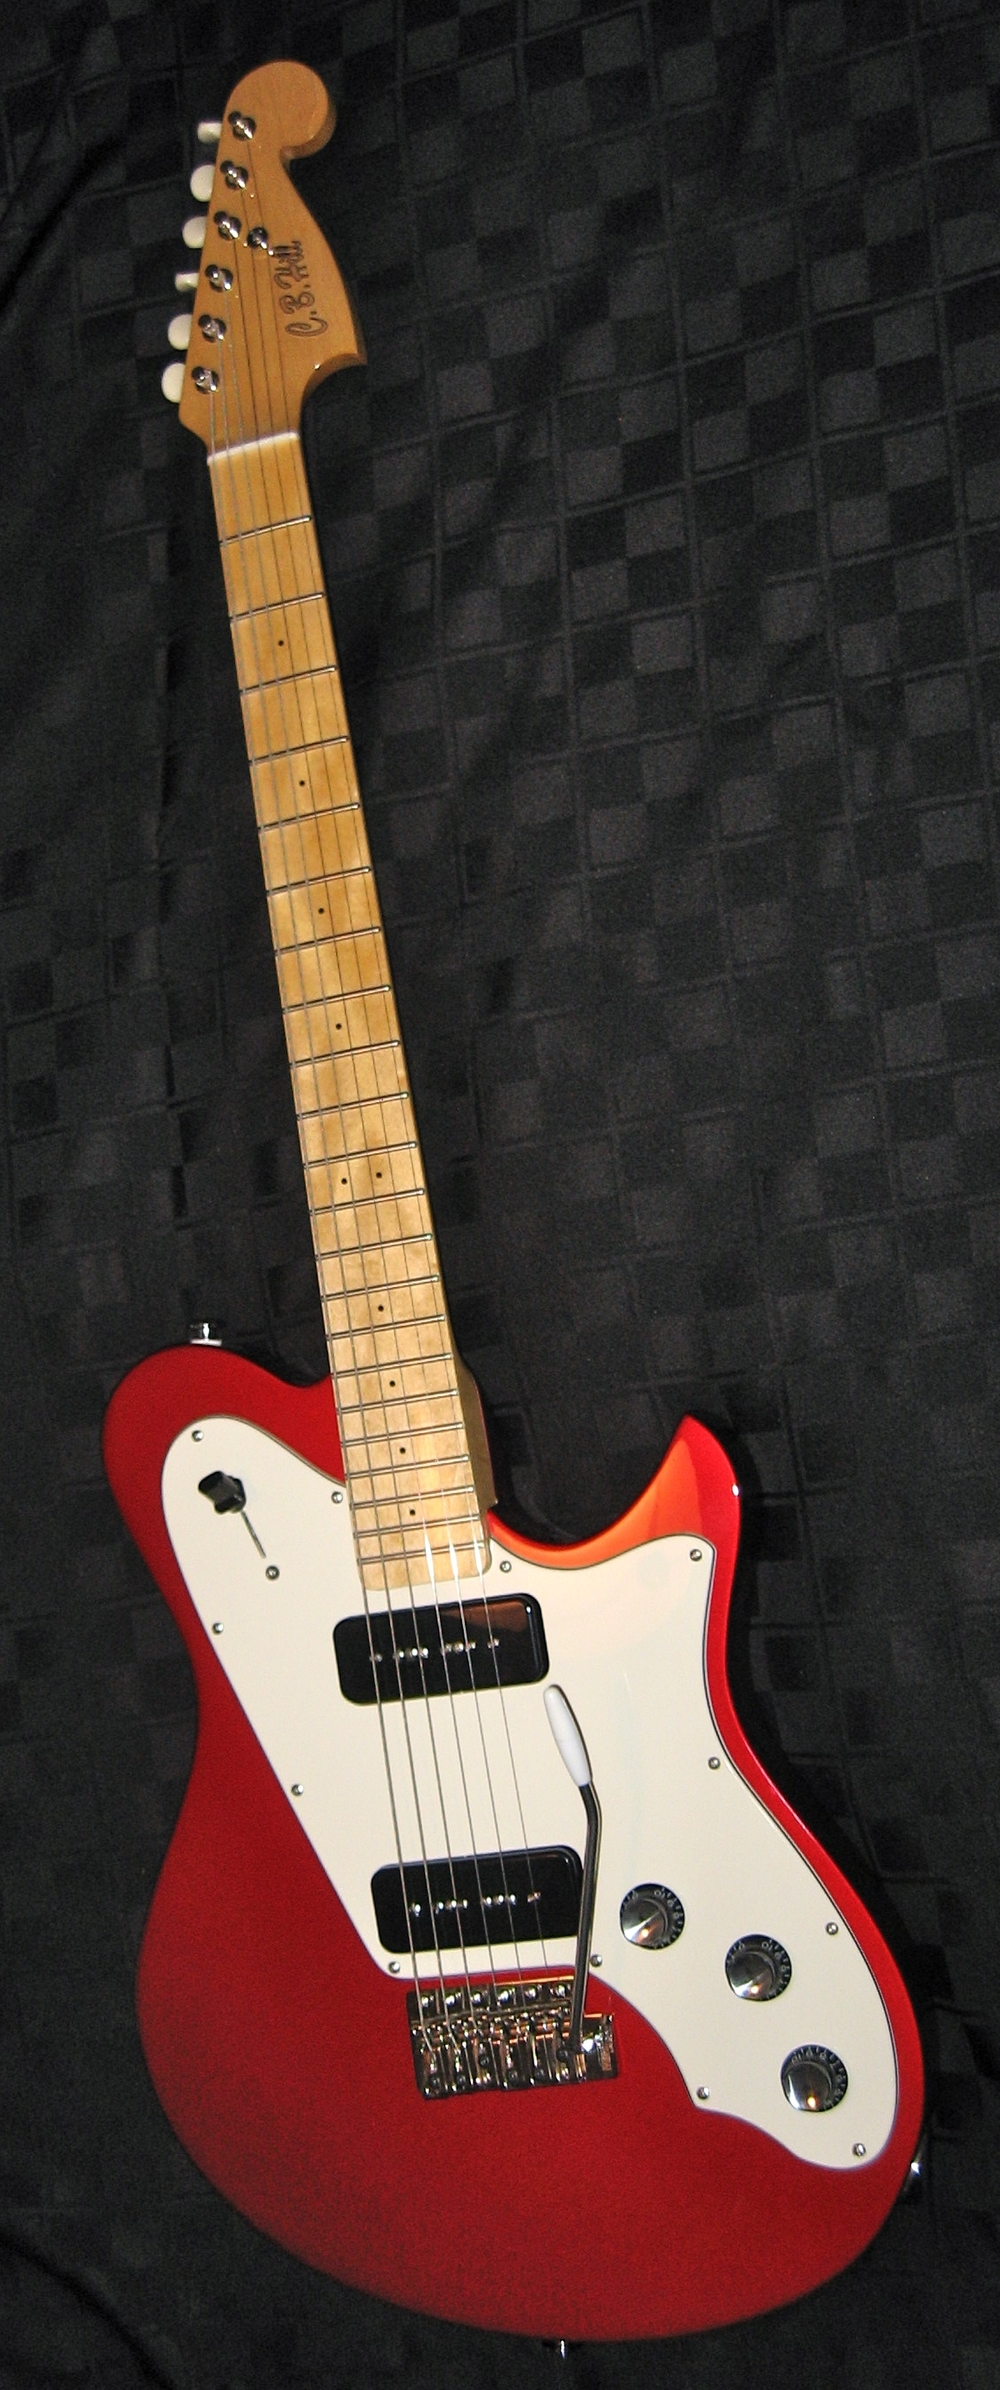 A new red Surfmaster that went to Wildriff Guitars in Canada